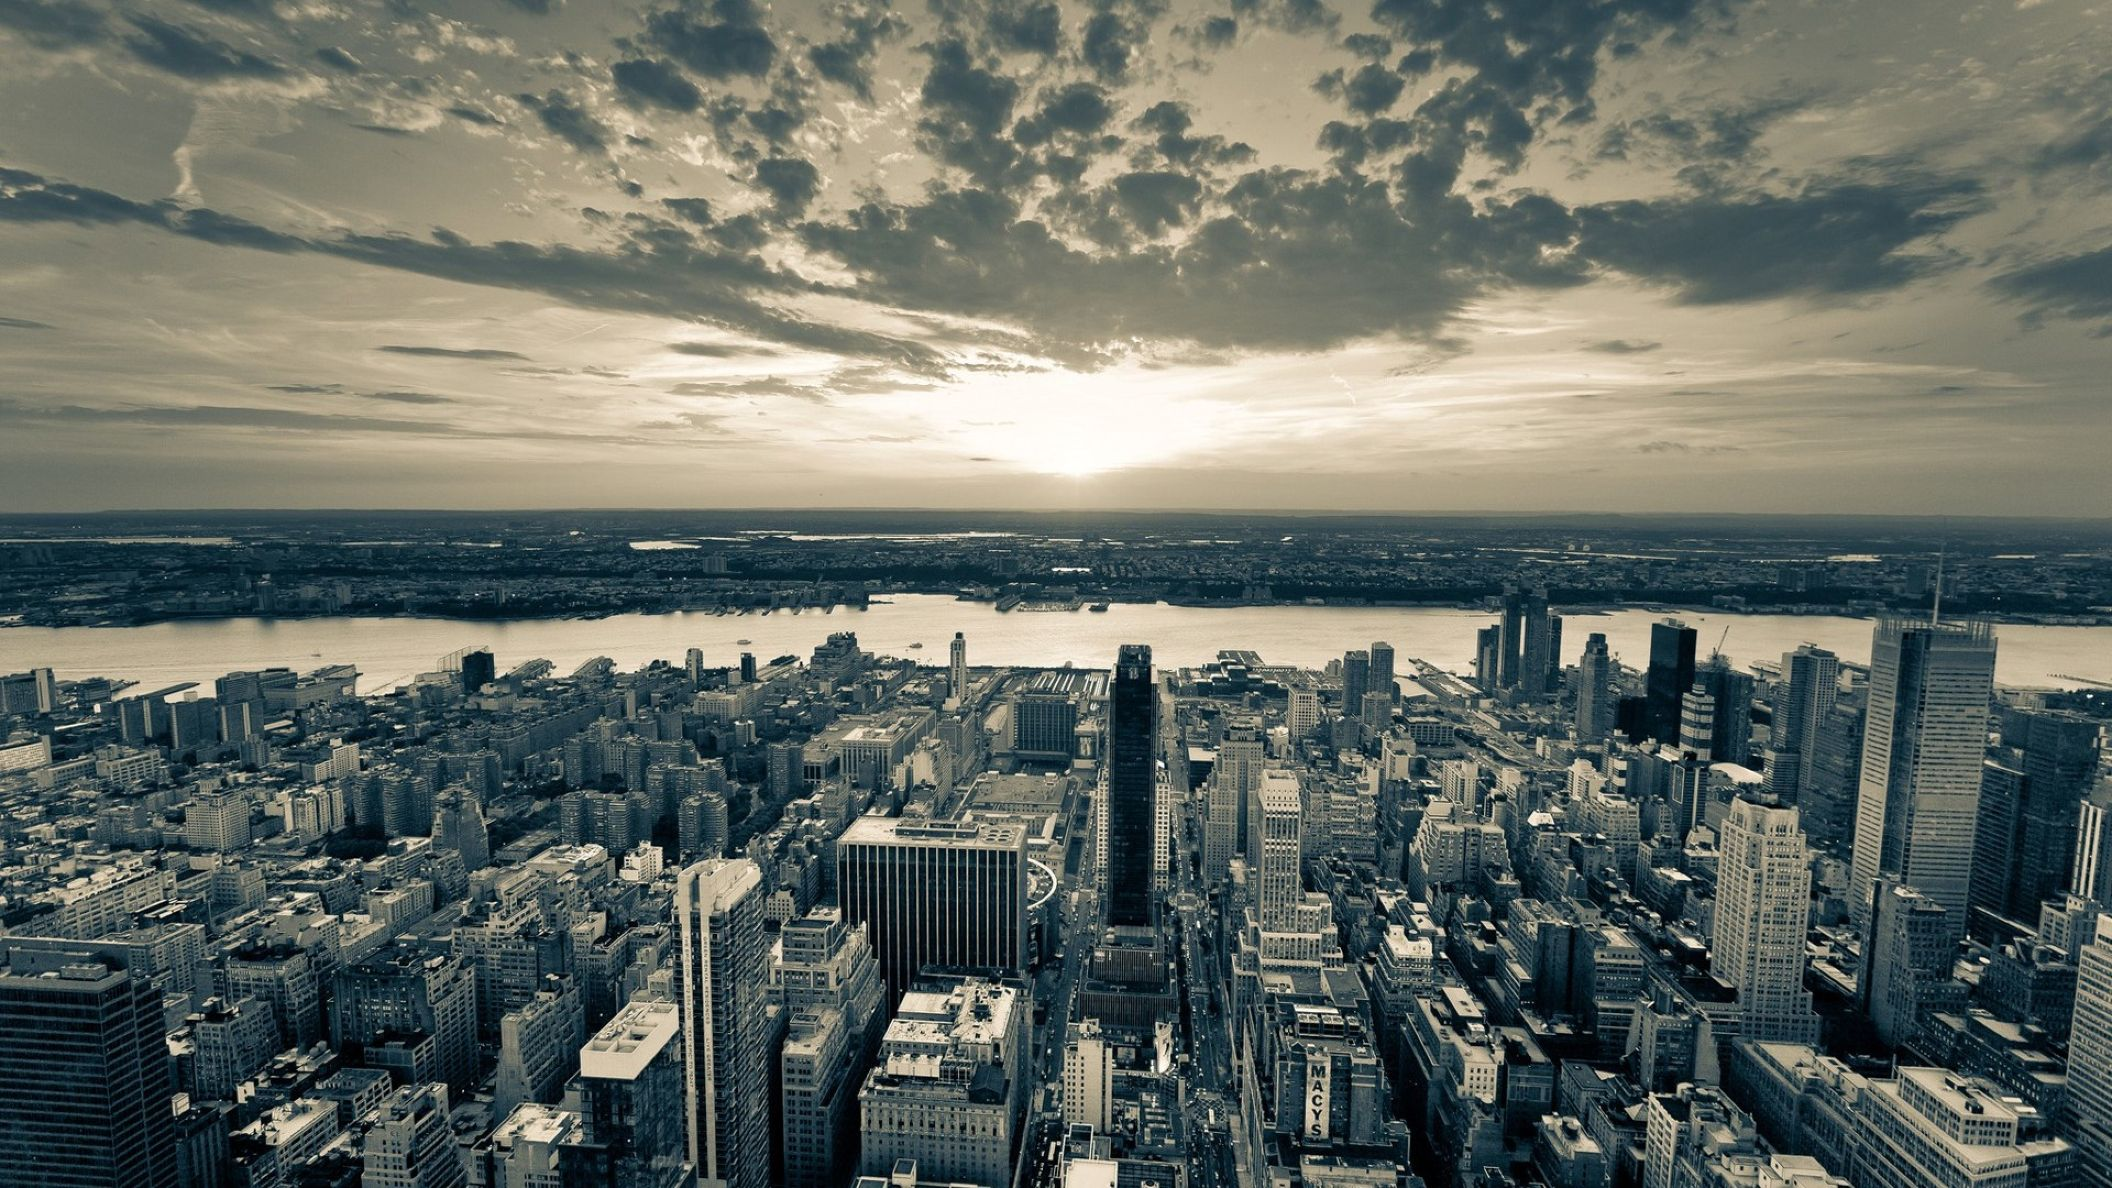 New York City Hd Black And White Wallpaper Desktop Hd Wallpaper